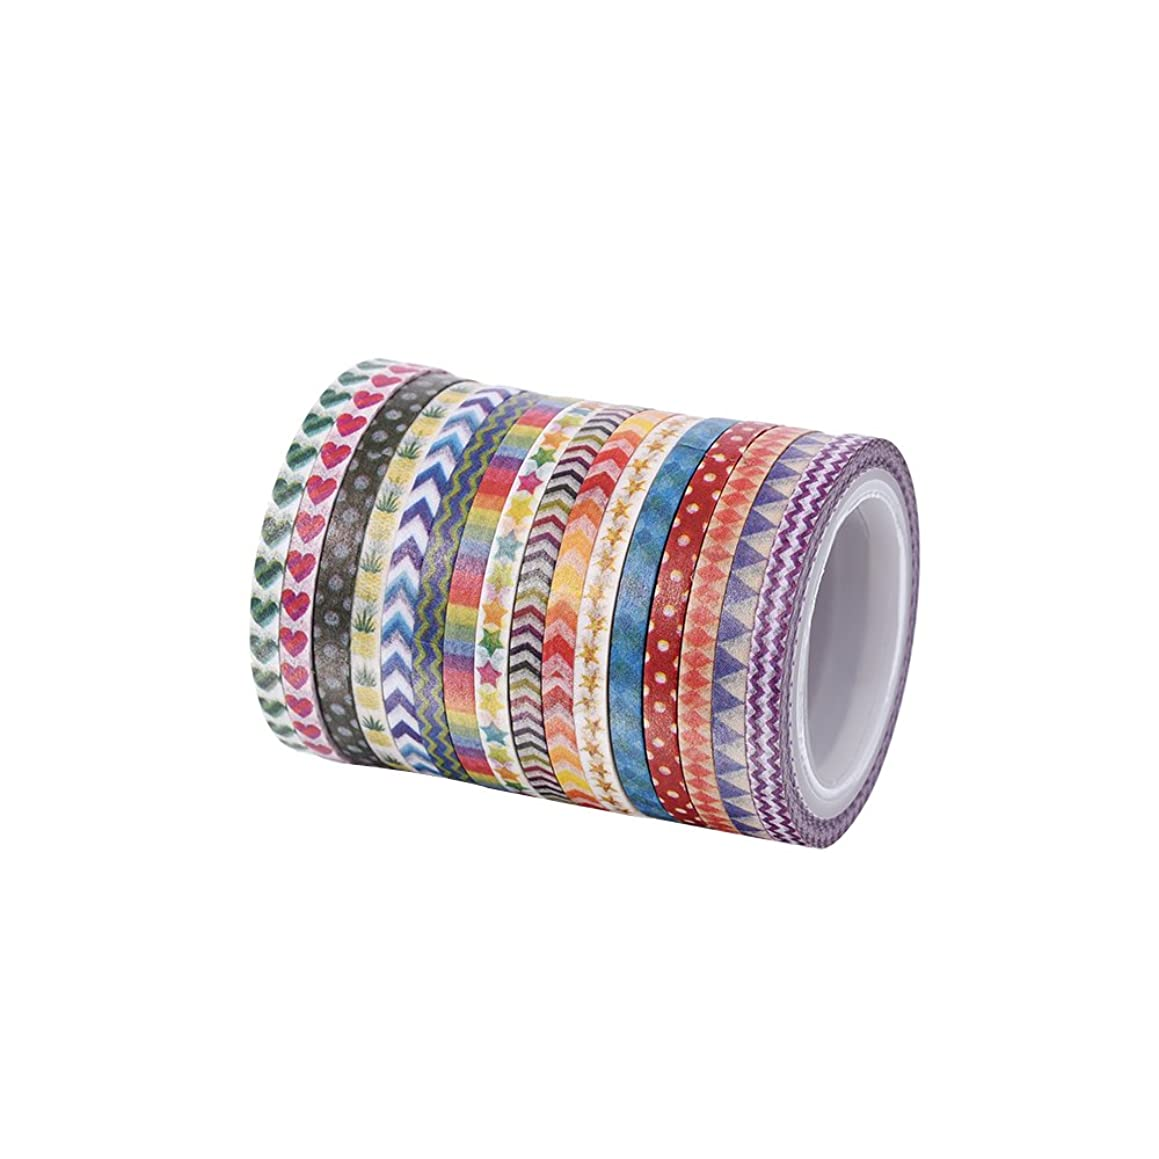 Cute 3mm wide skinny Washi Tape With Colorful Designs and Patterns - Perfect For Planners, Decorating, Scrapbooking